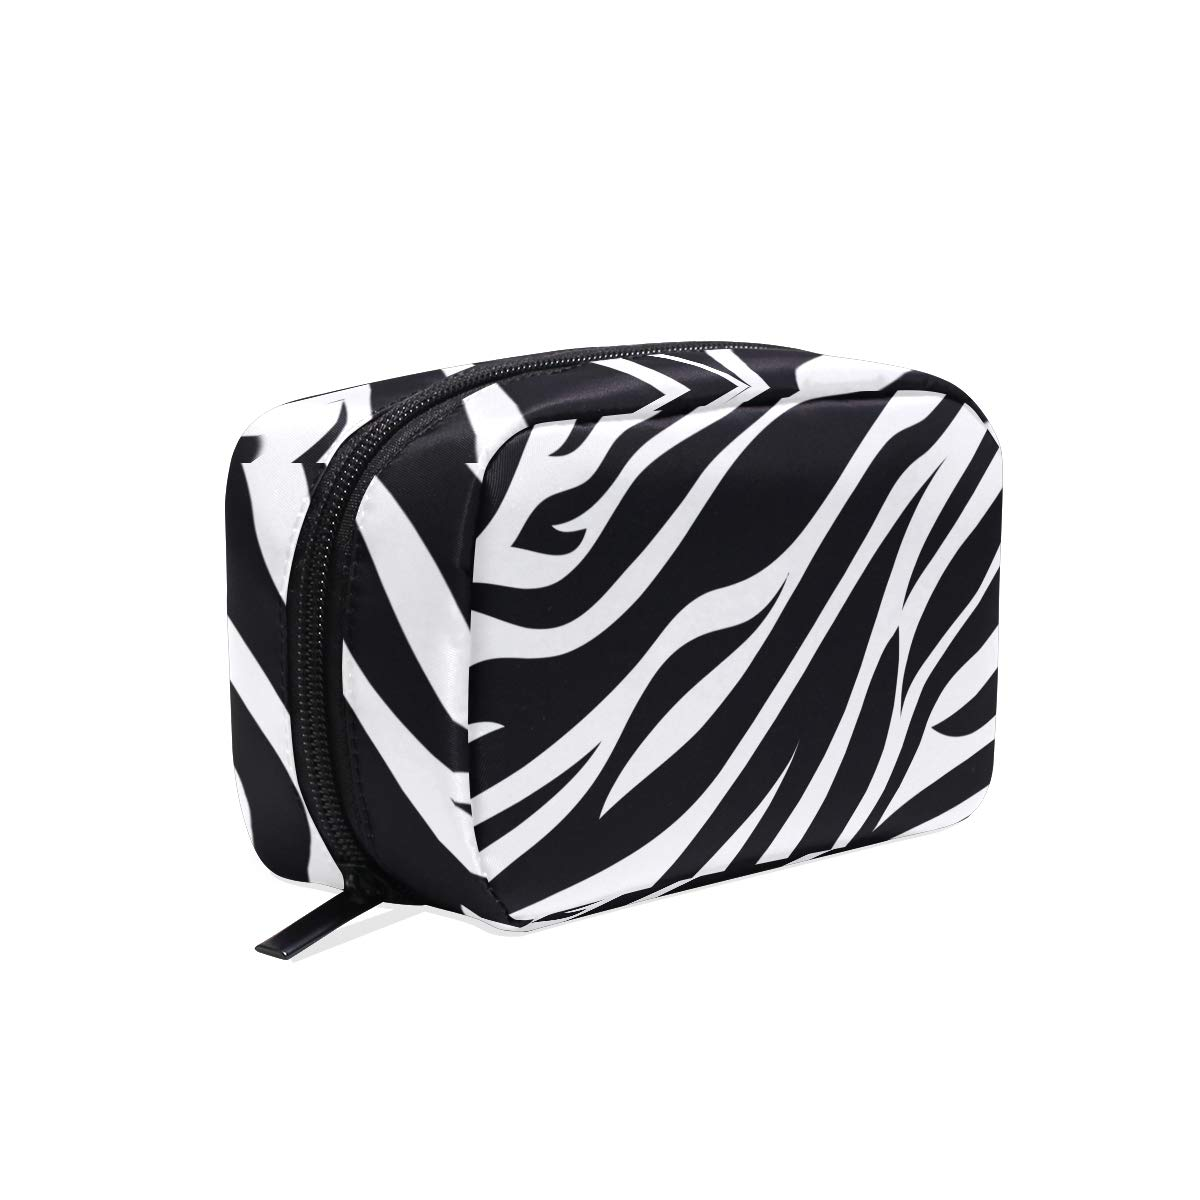 Zebra Animal Print Cosmetic Bags Organizer- Travel Makeup Pouch Ladies Toiletry Case for Women Girls, CoTime Black Zipper